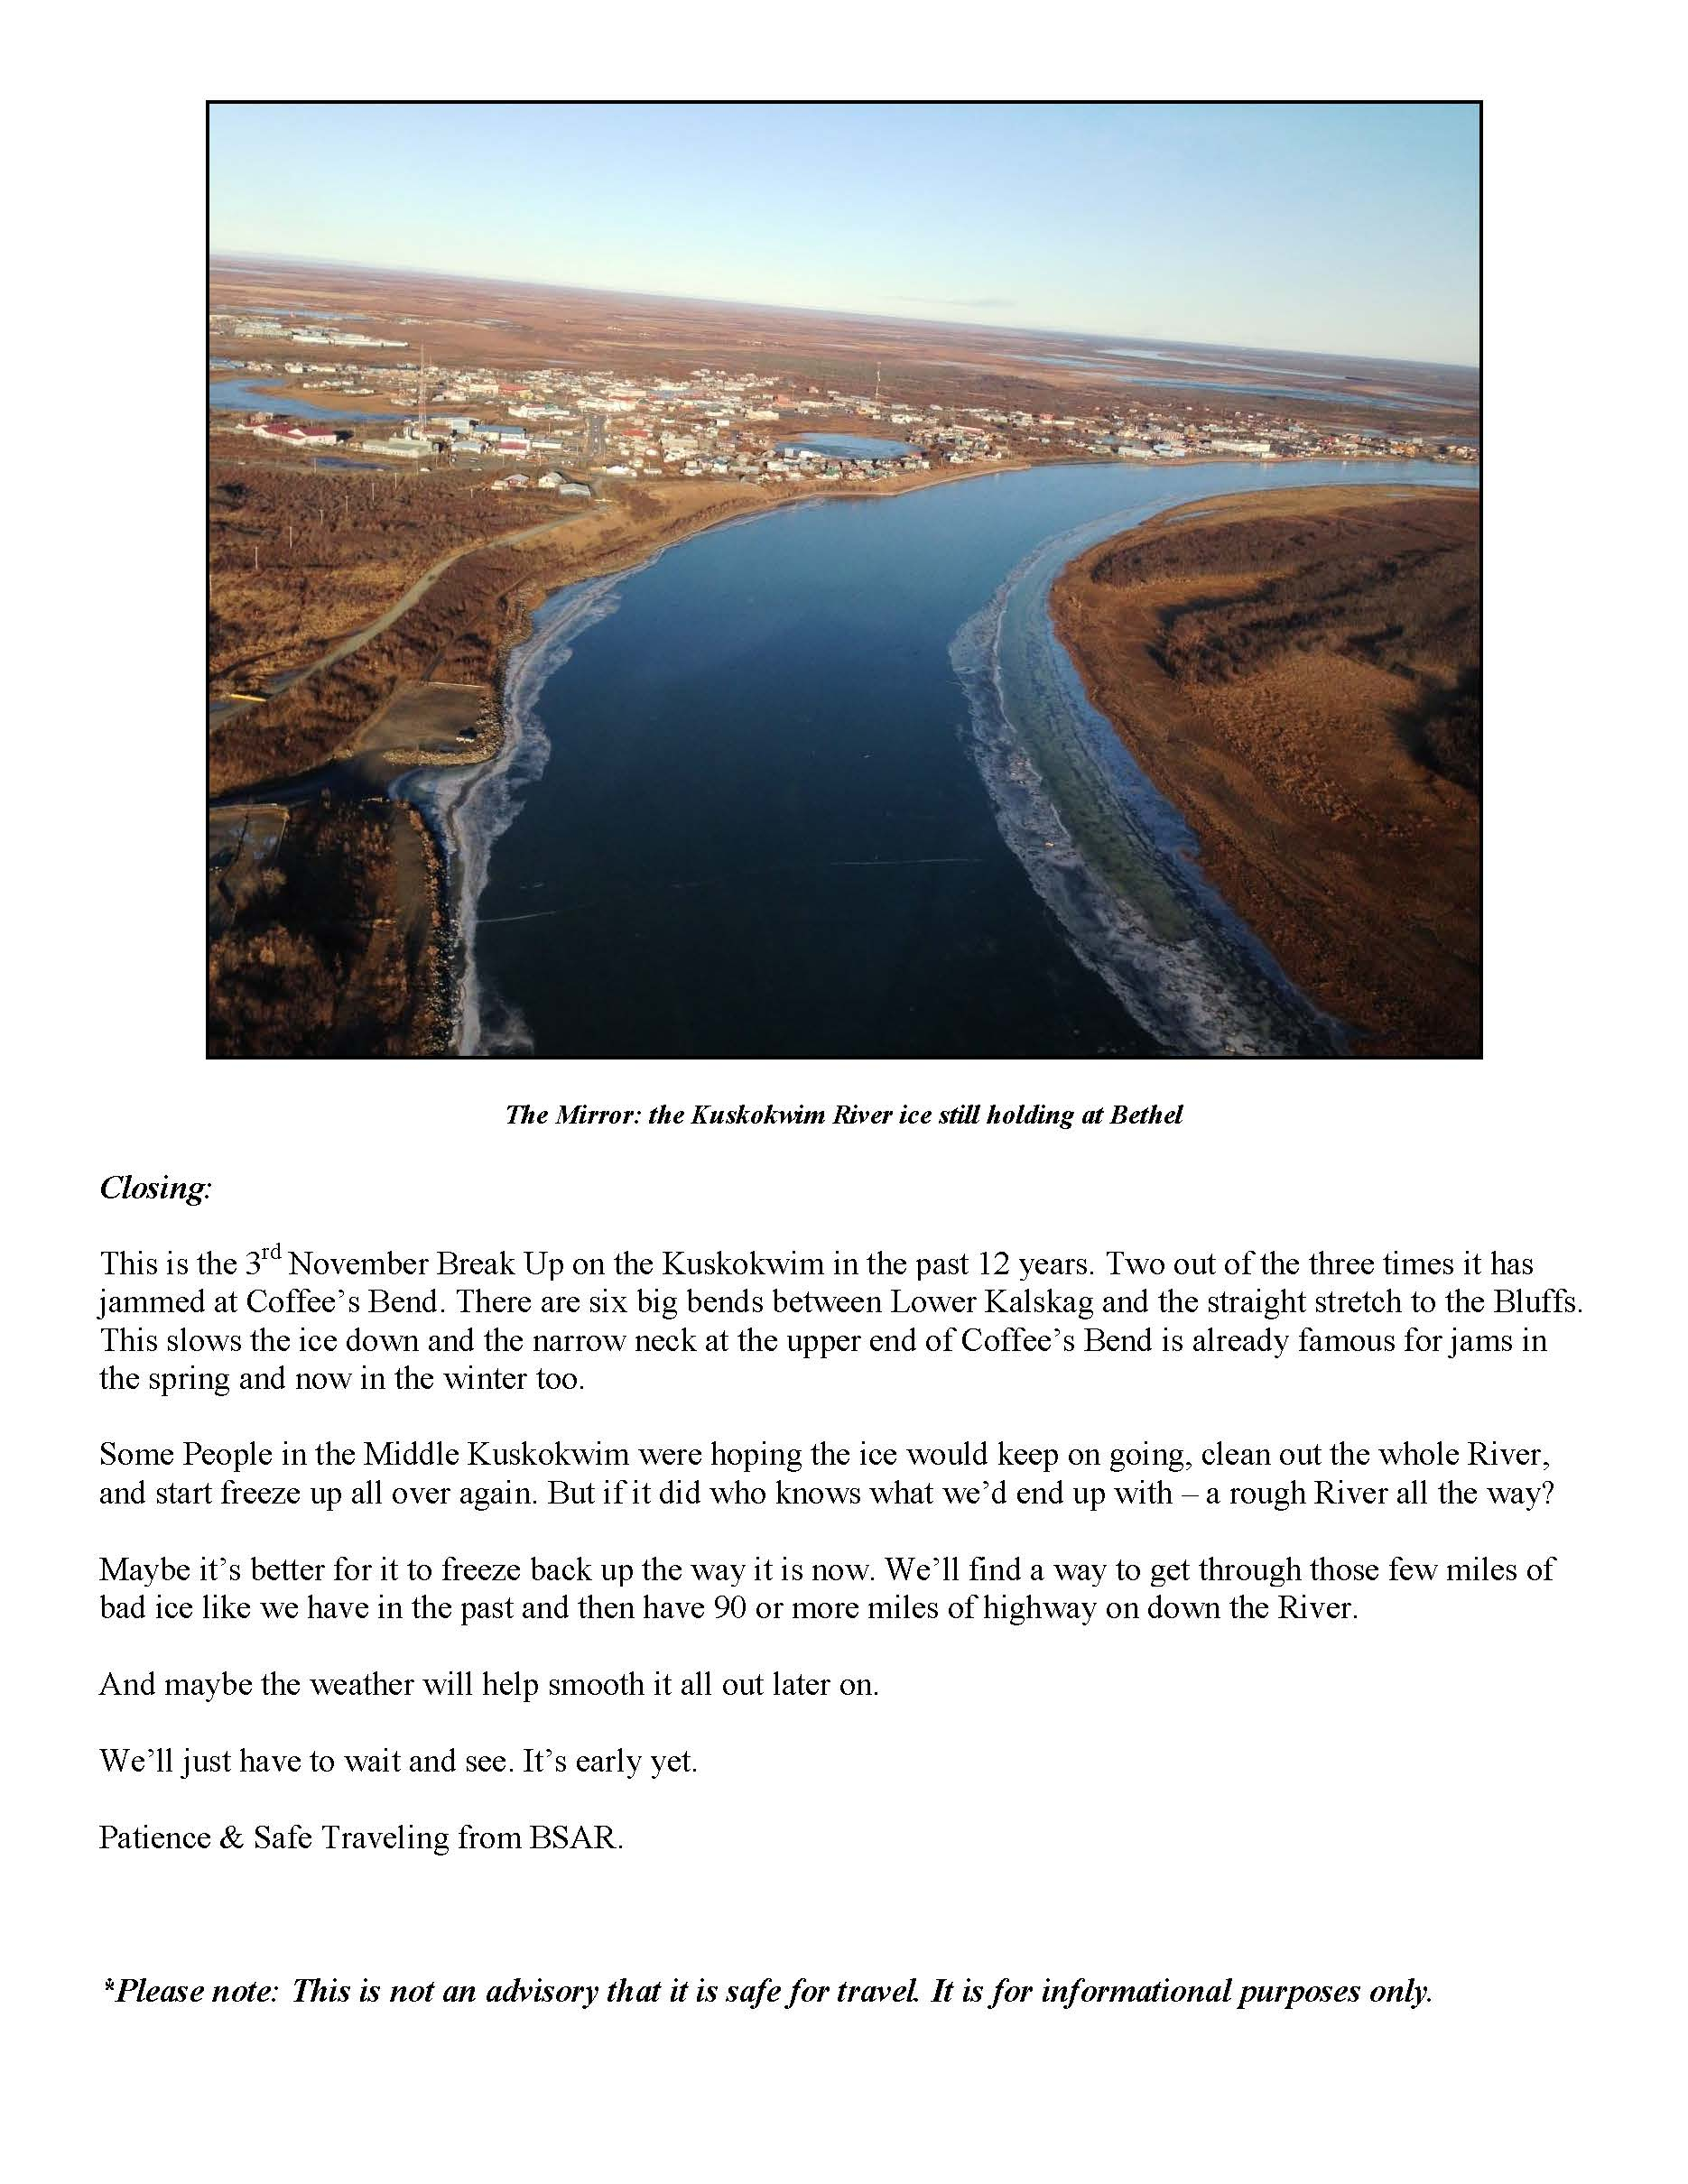 11-17-14 BSAR RIVER REPORT_Page_5